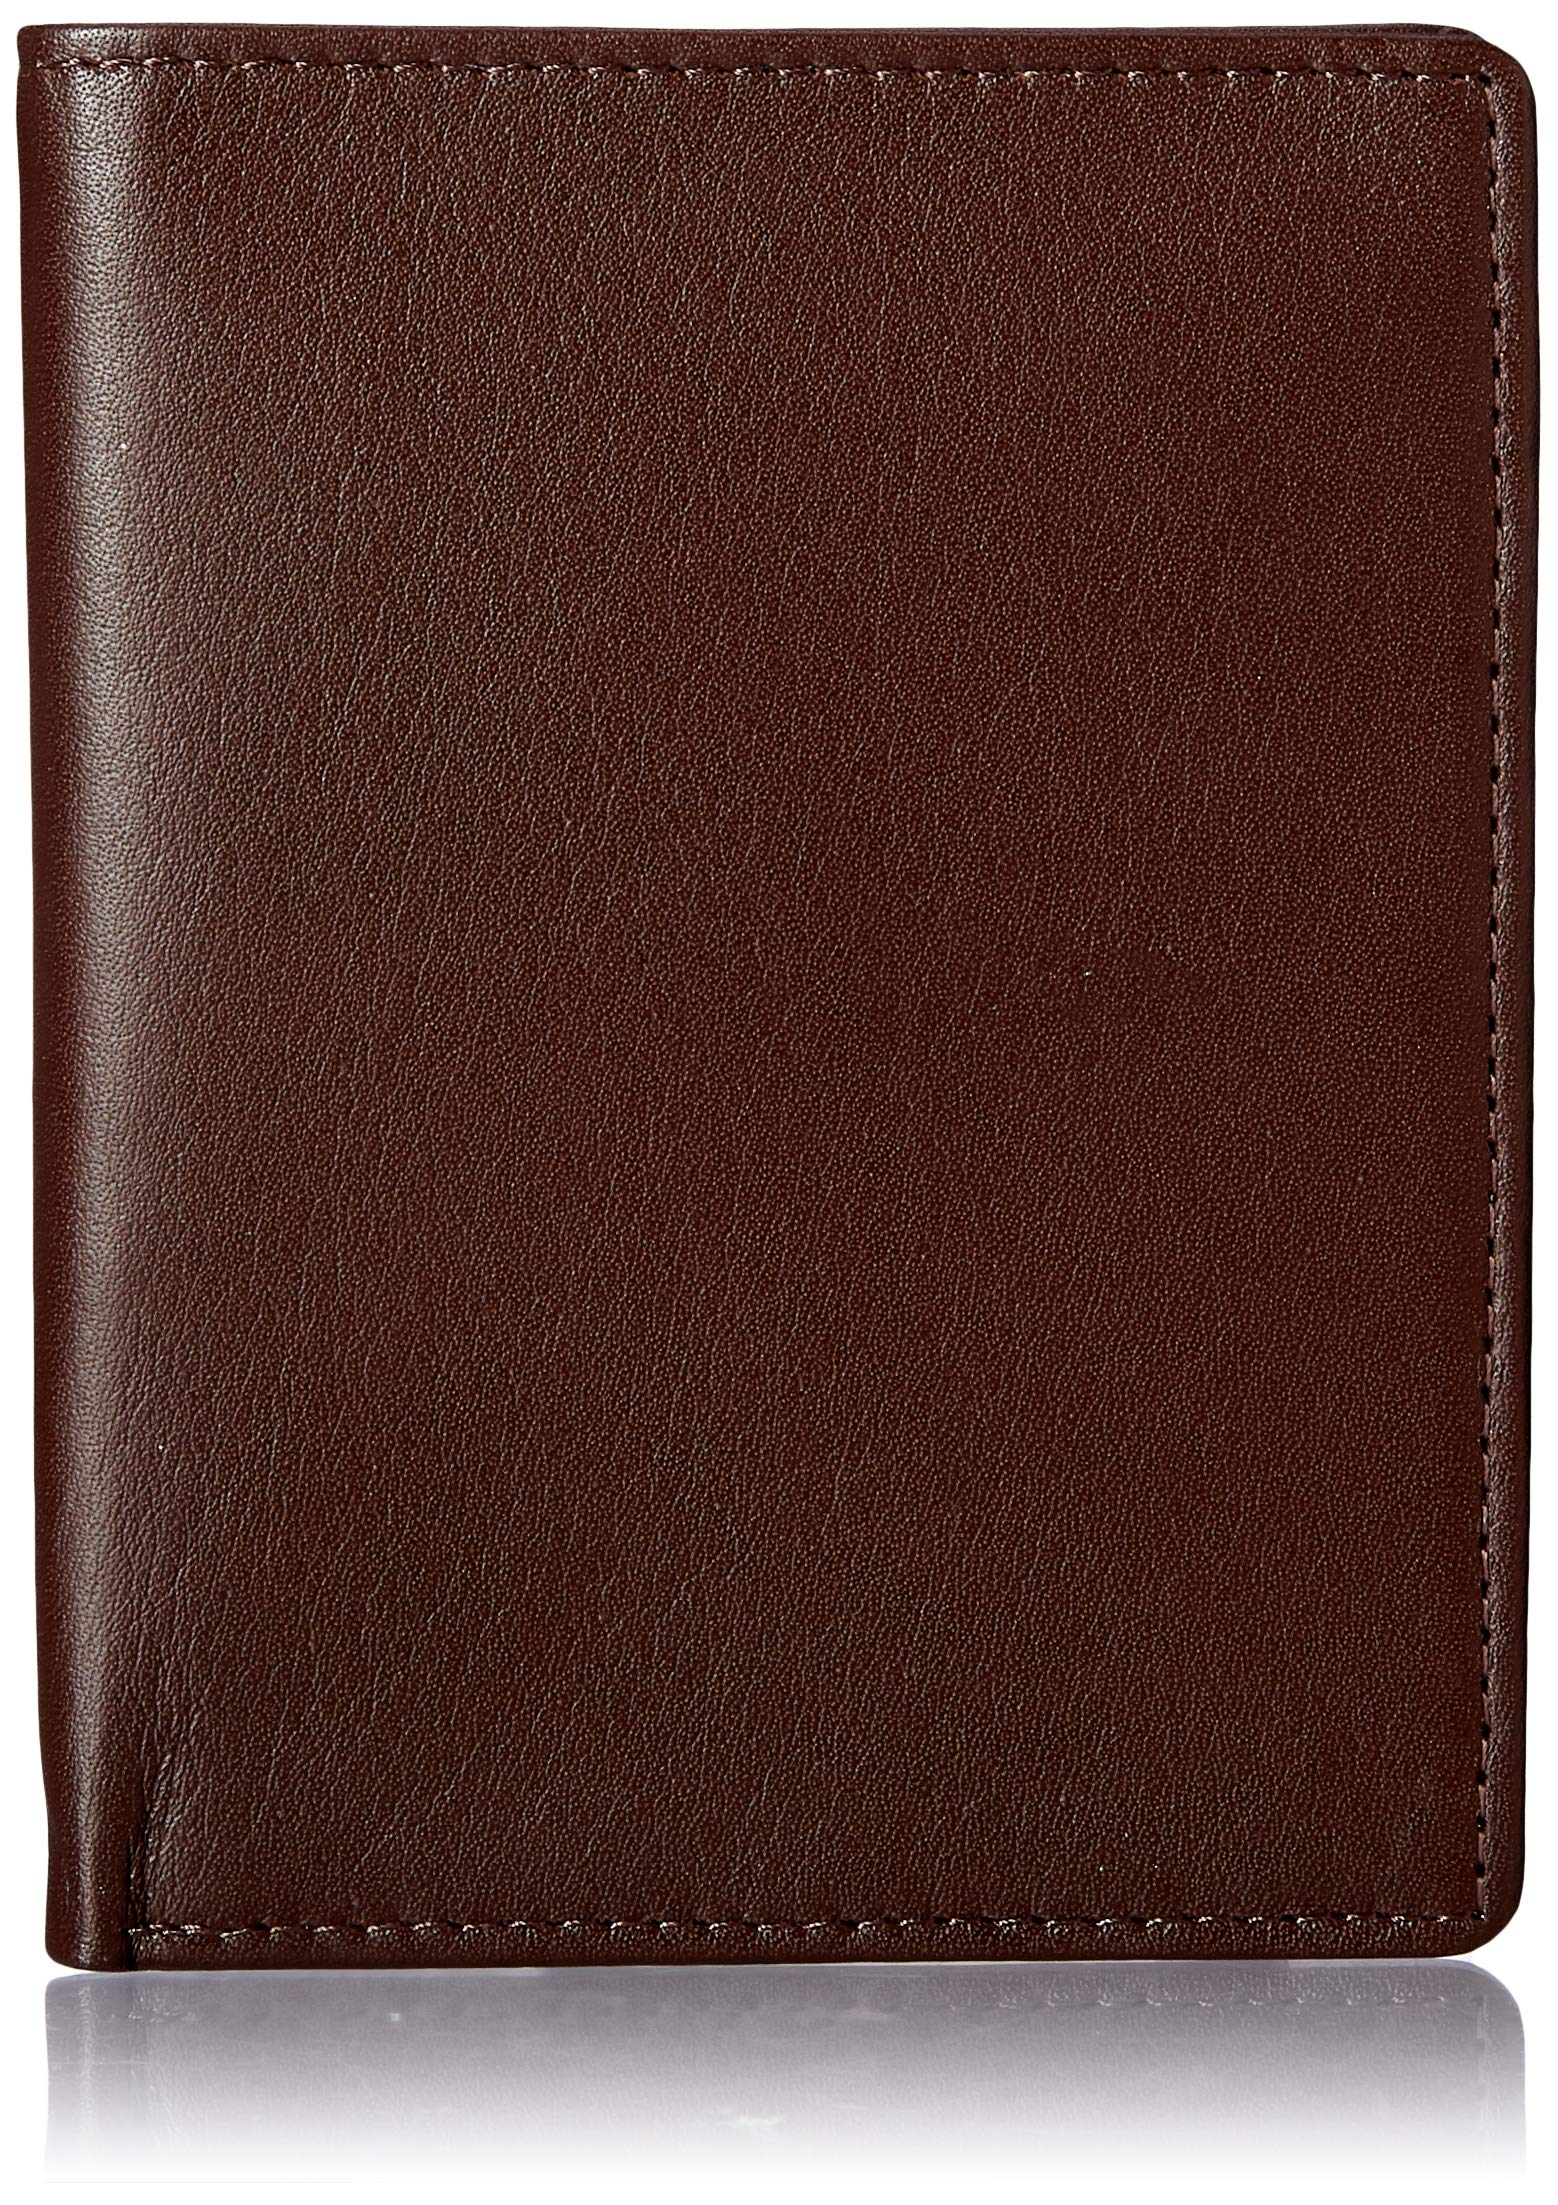 Royce Leather RFID Blocking Bifold Passport Currency Travel Wallet, Brown by Royce Leather